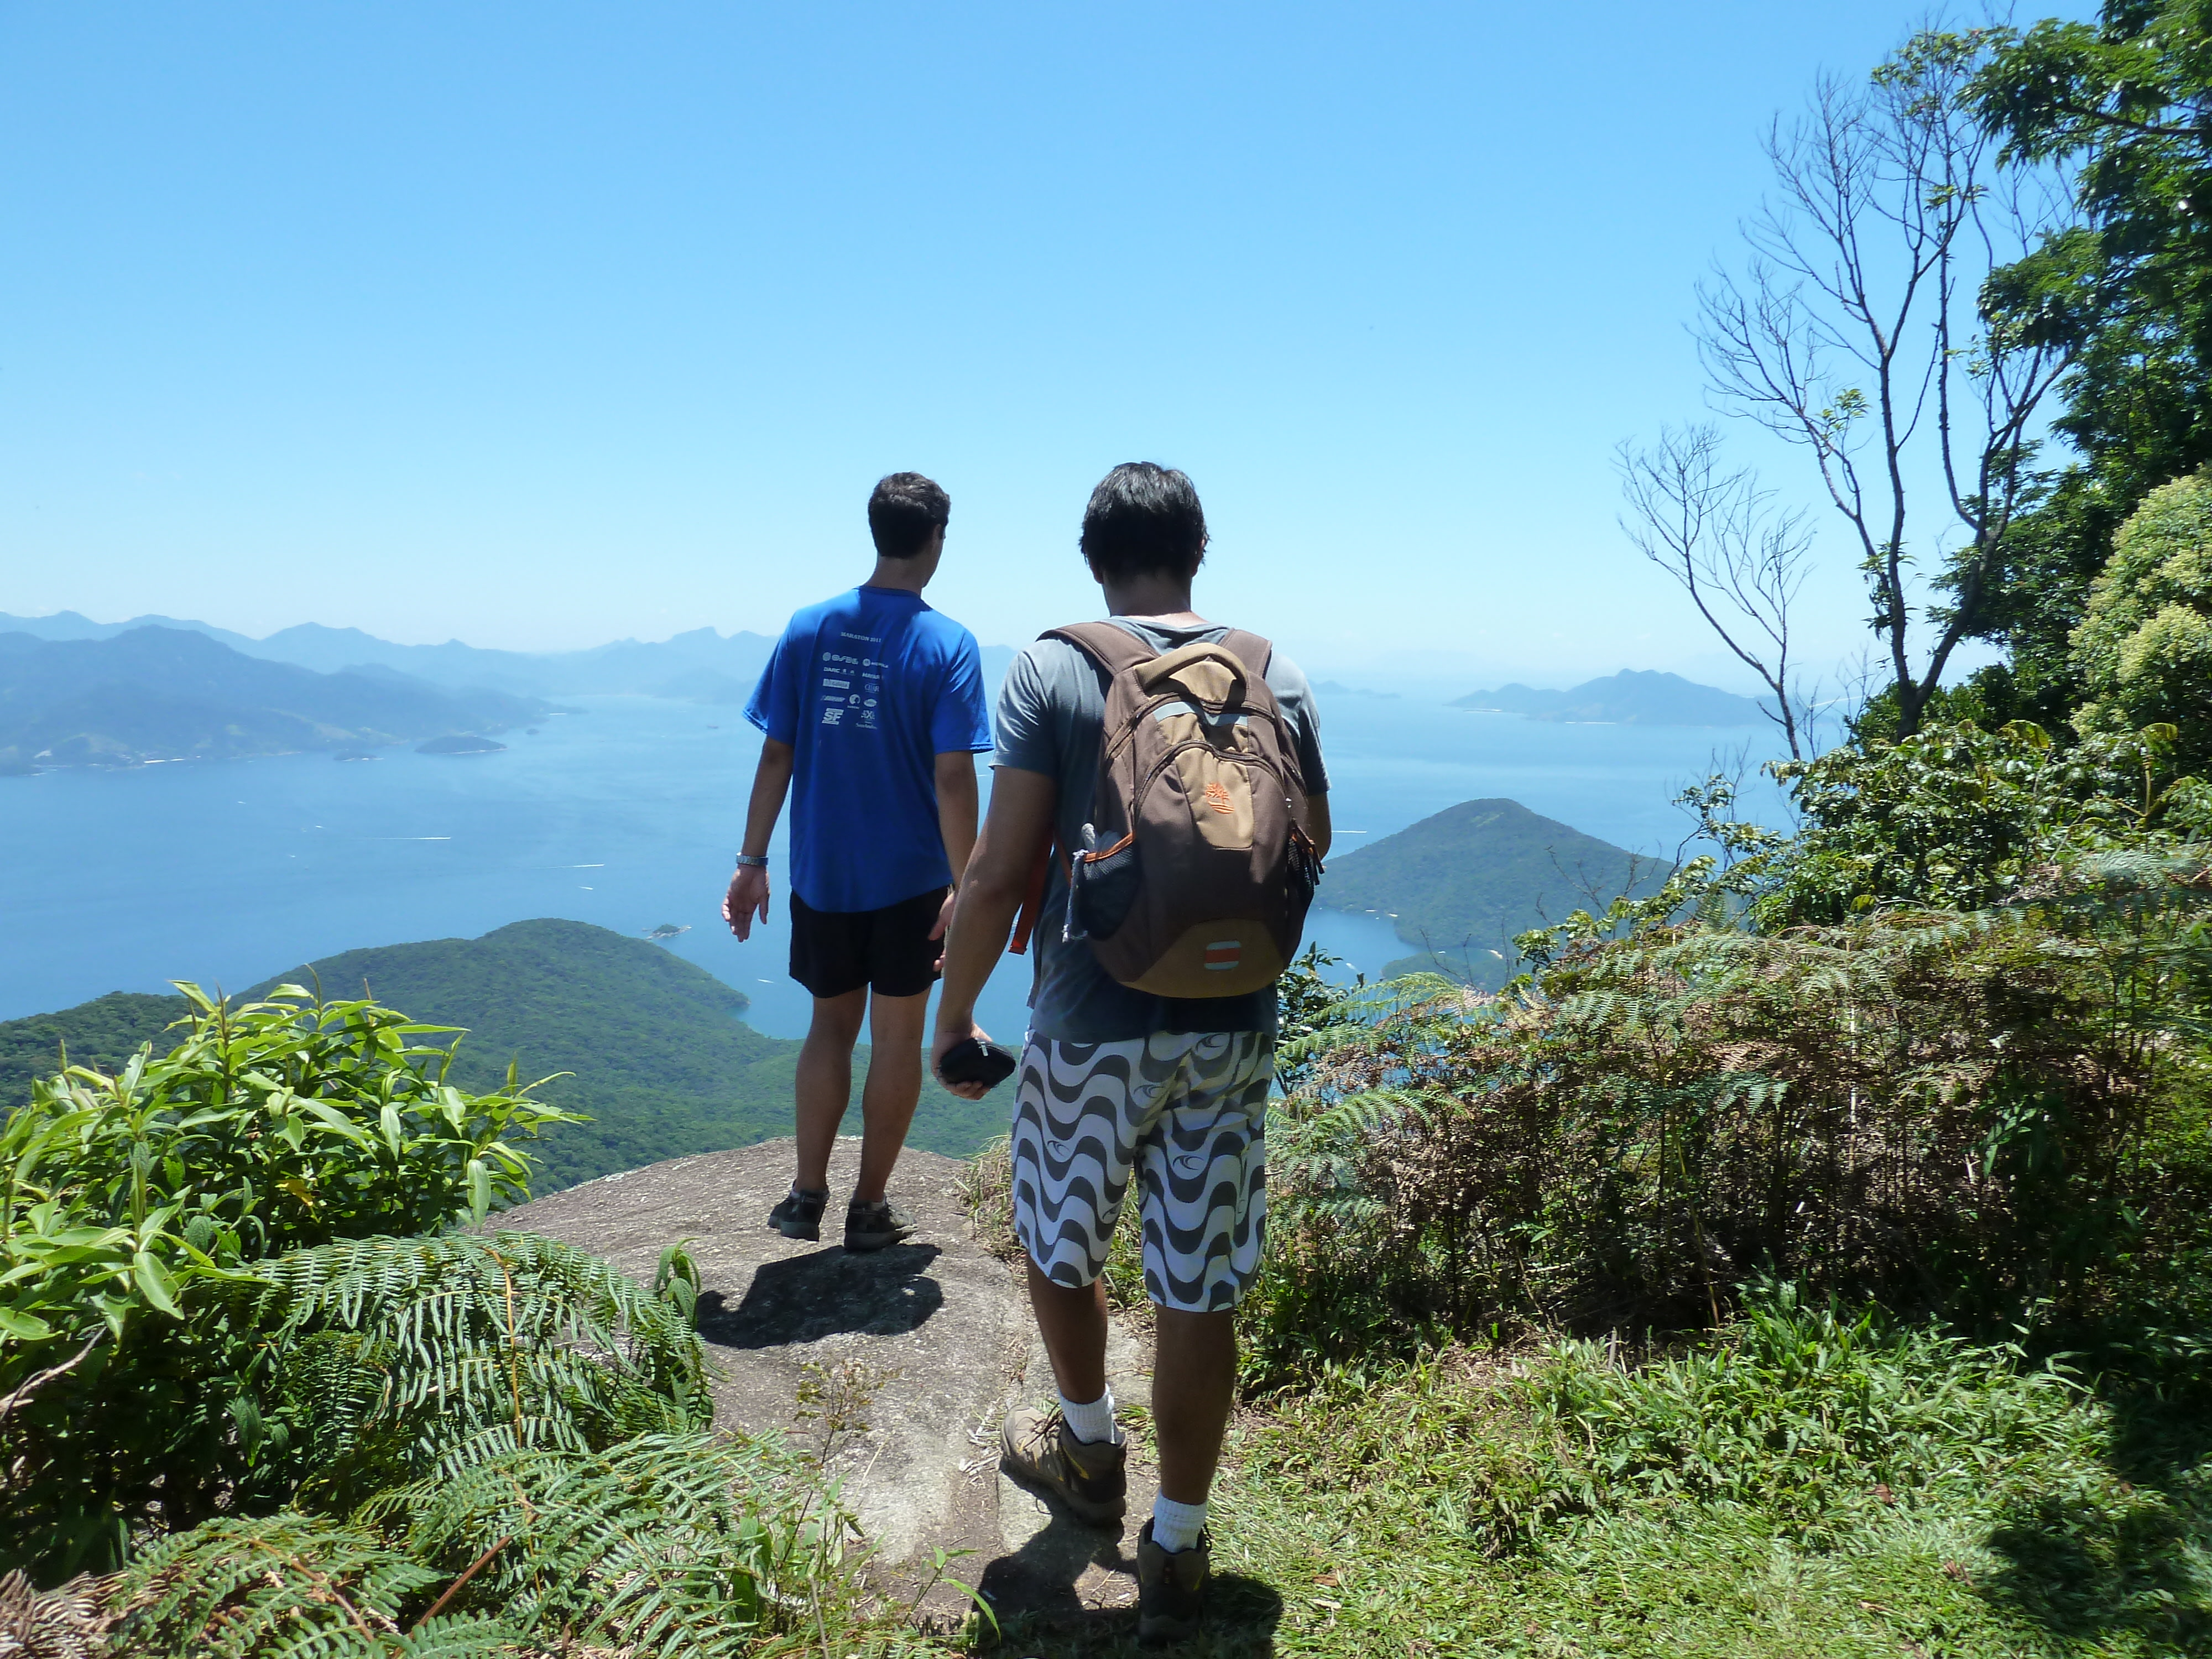 Hike the Ilha Grande with your friends and partner